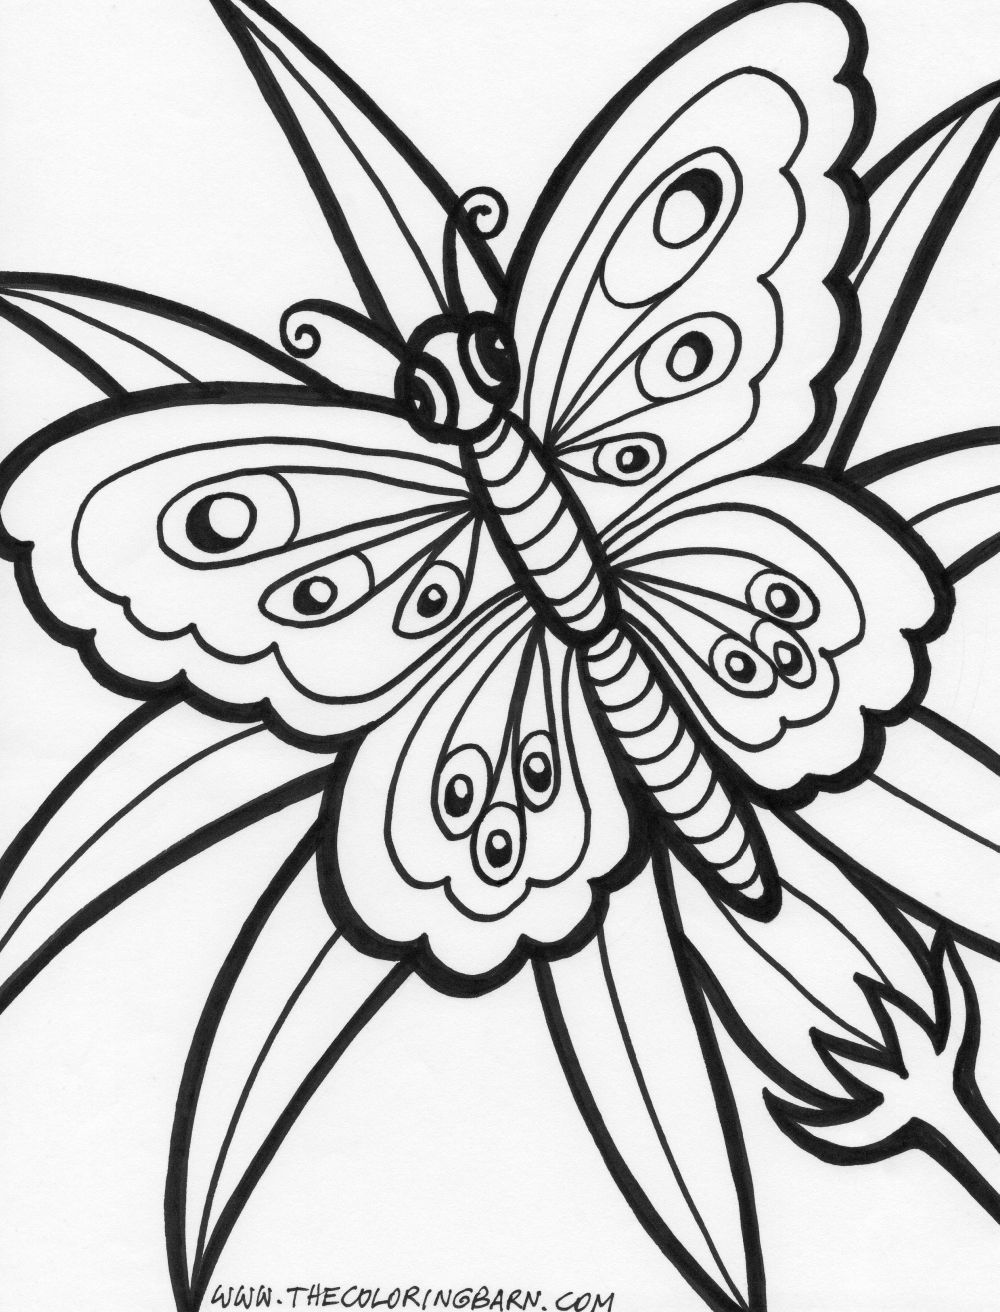 Silly Butterfly Coloring Page   Bug coloring pages, Butterfly ...   1312x1000